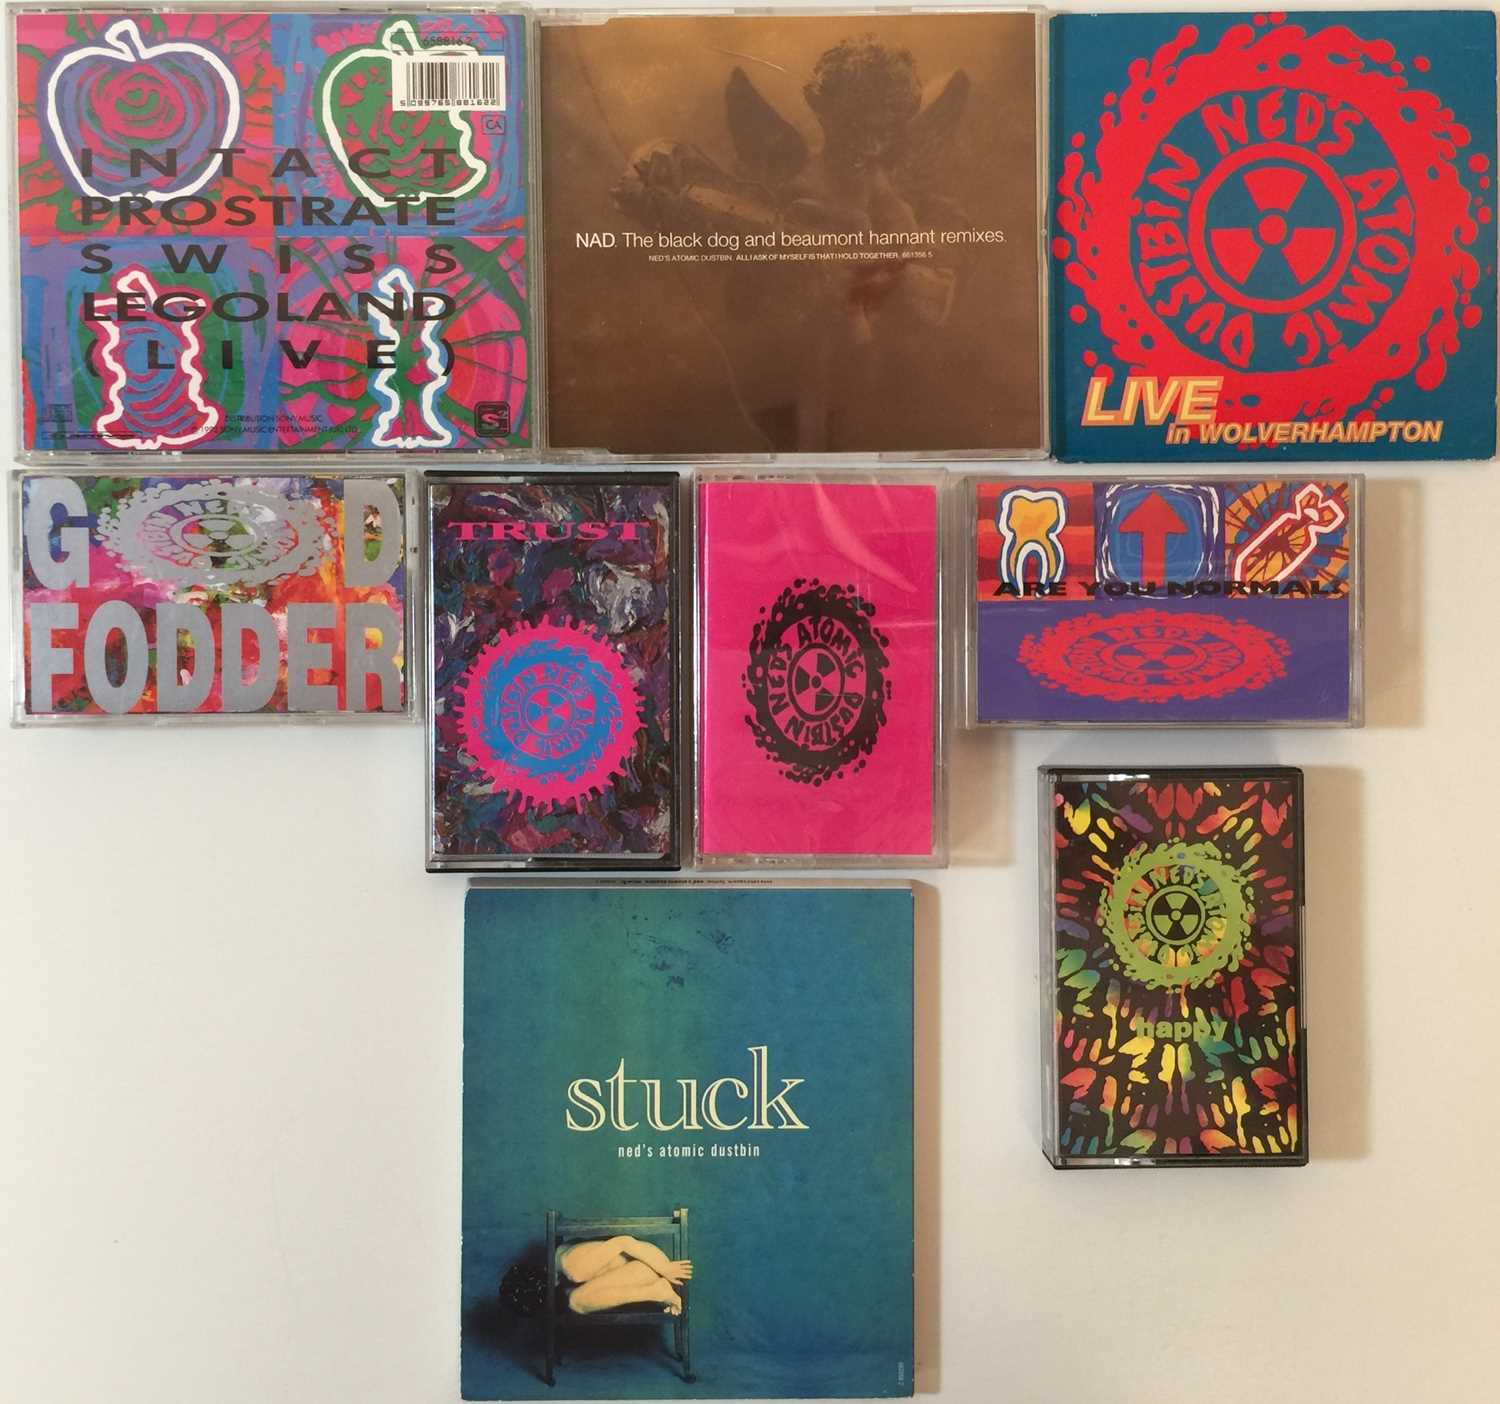 NED'S ATOMIC DUSTBIN - CD & CASSETTE COLLECTION - Image 2 of 2